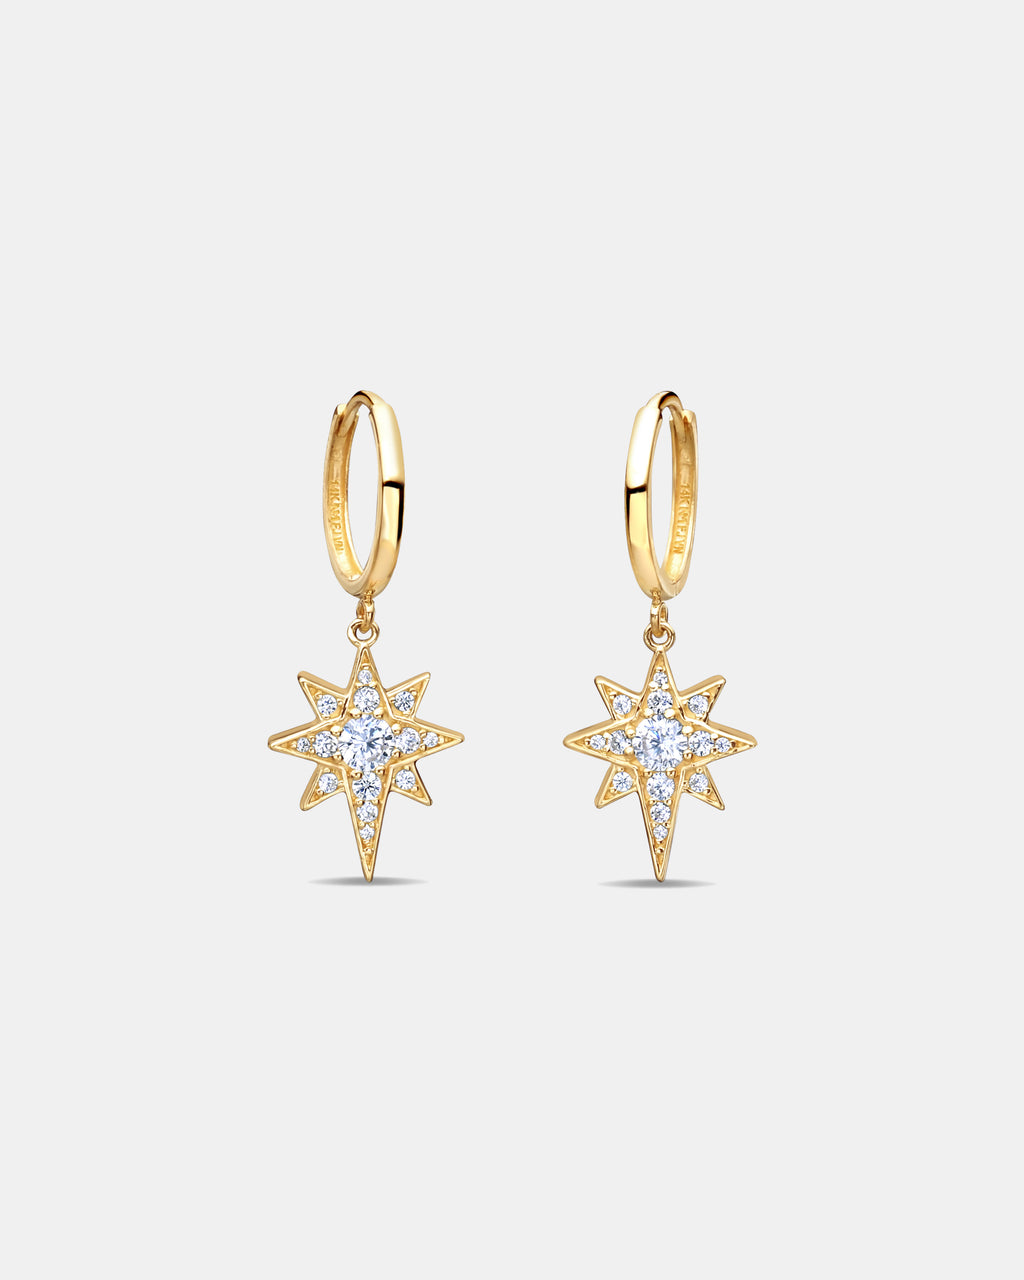 NME1011 - OBLONG STAR DANGLE HOOPS - accessories - jewelry - Up your ear game with these Oblong Star Dangle Hoops. Made from 14-karat gold and cubic zirconia, these dainty hoops are an everyday style with edge.